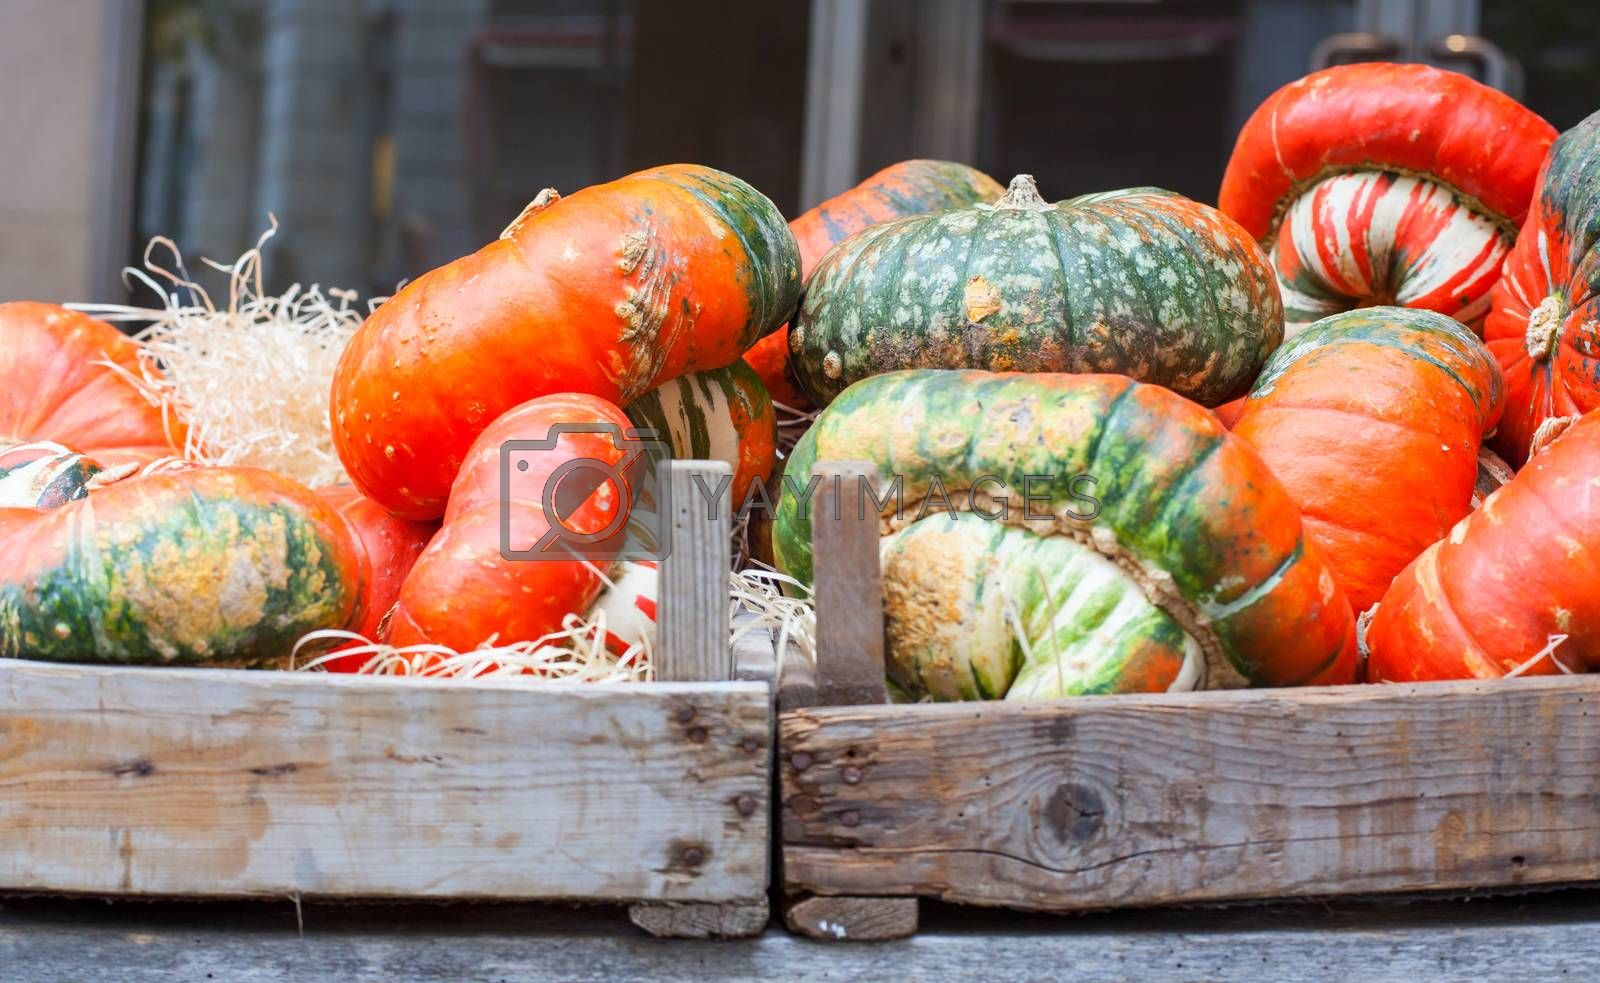 View of Pumpkins in the street market